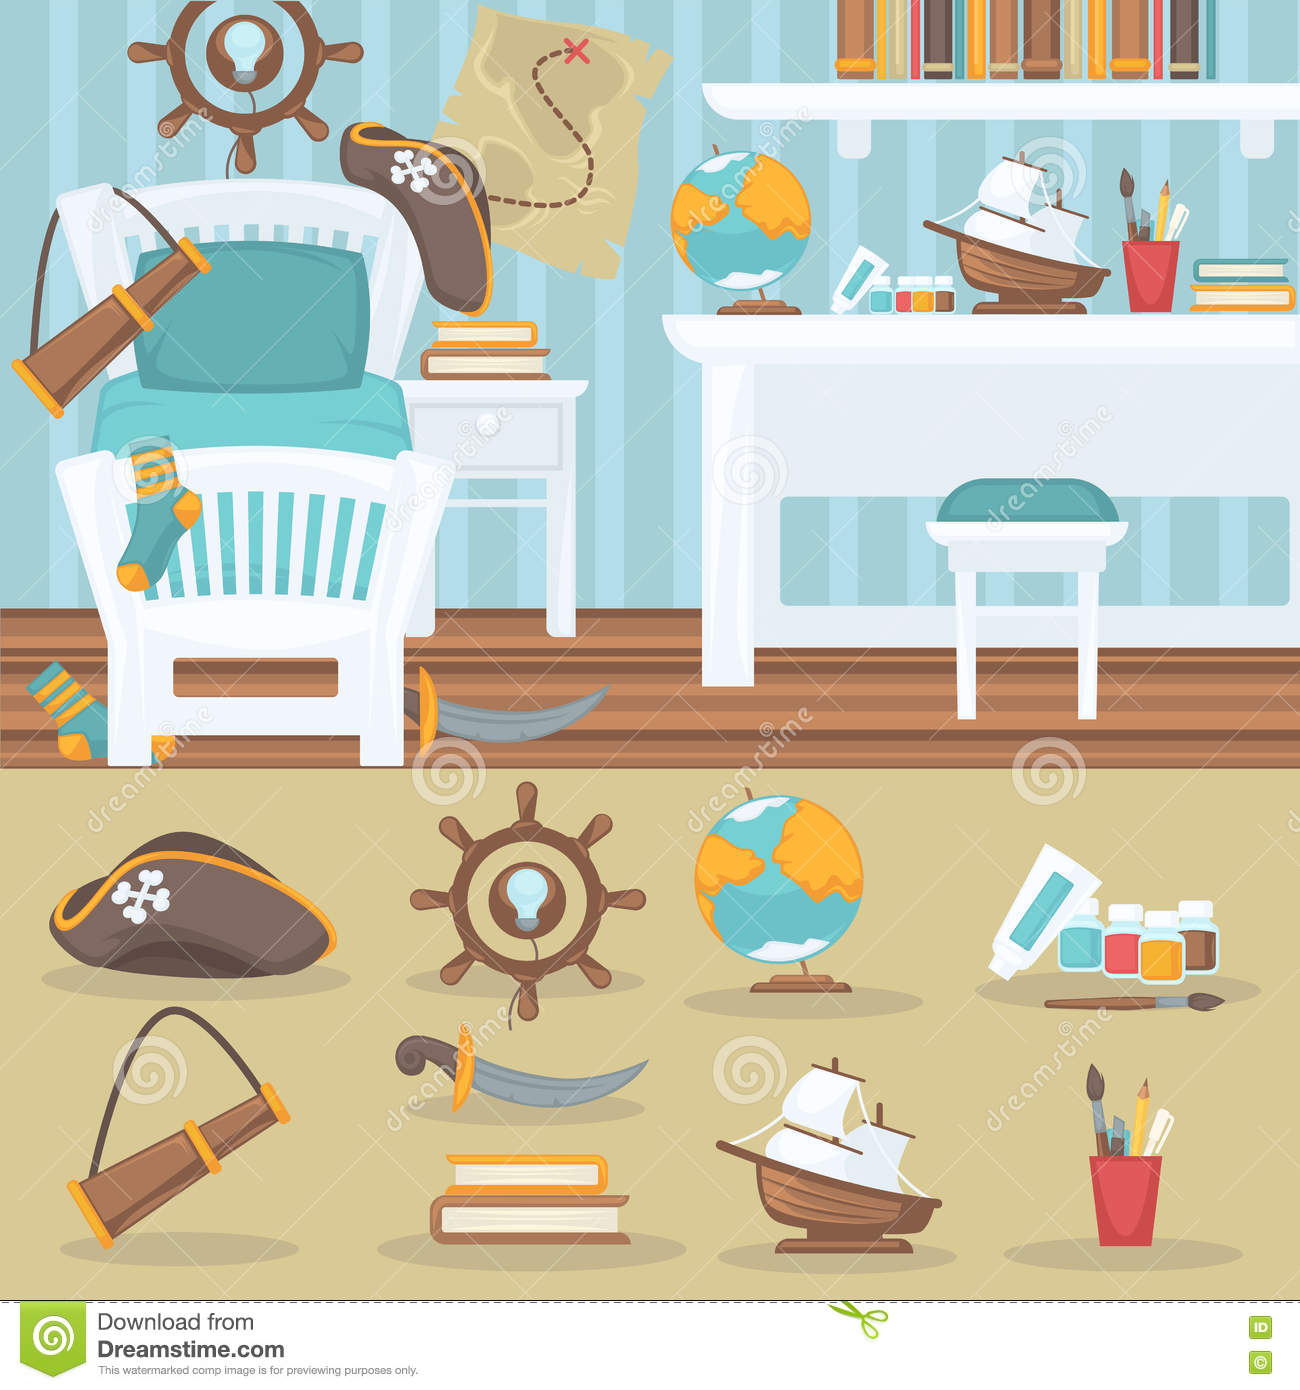 Image of: Child Bedroom Interior For Boy Stock Vector Illustration Of Bedroom Ball 77865739